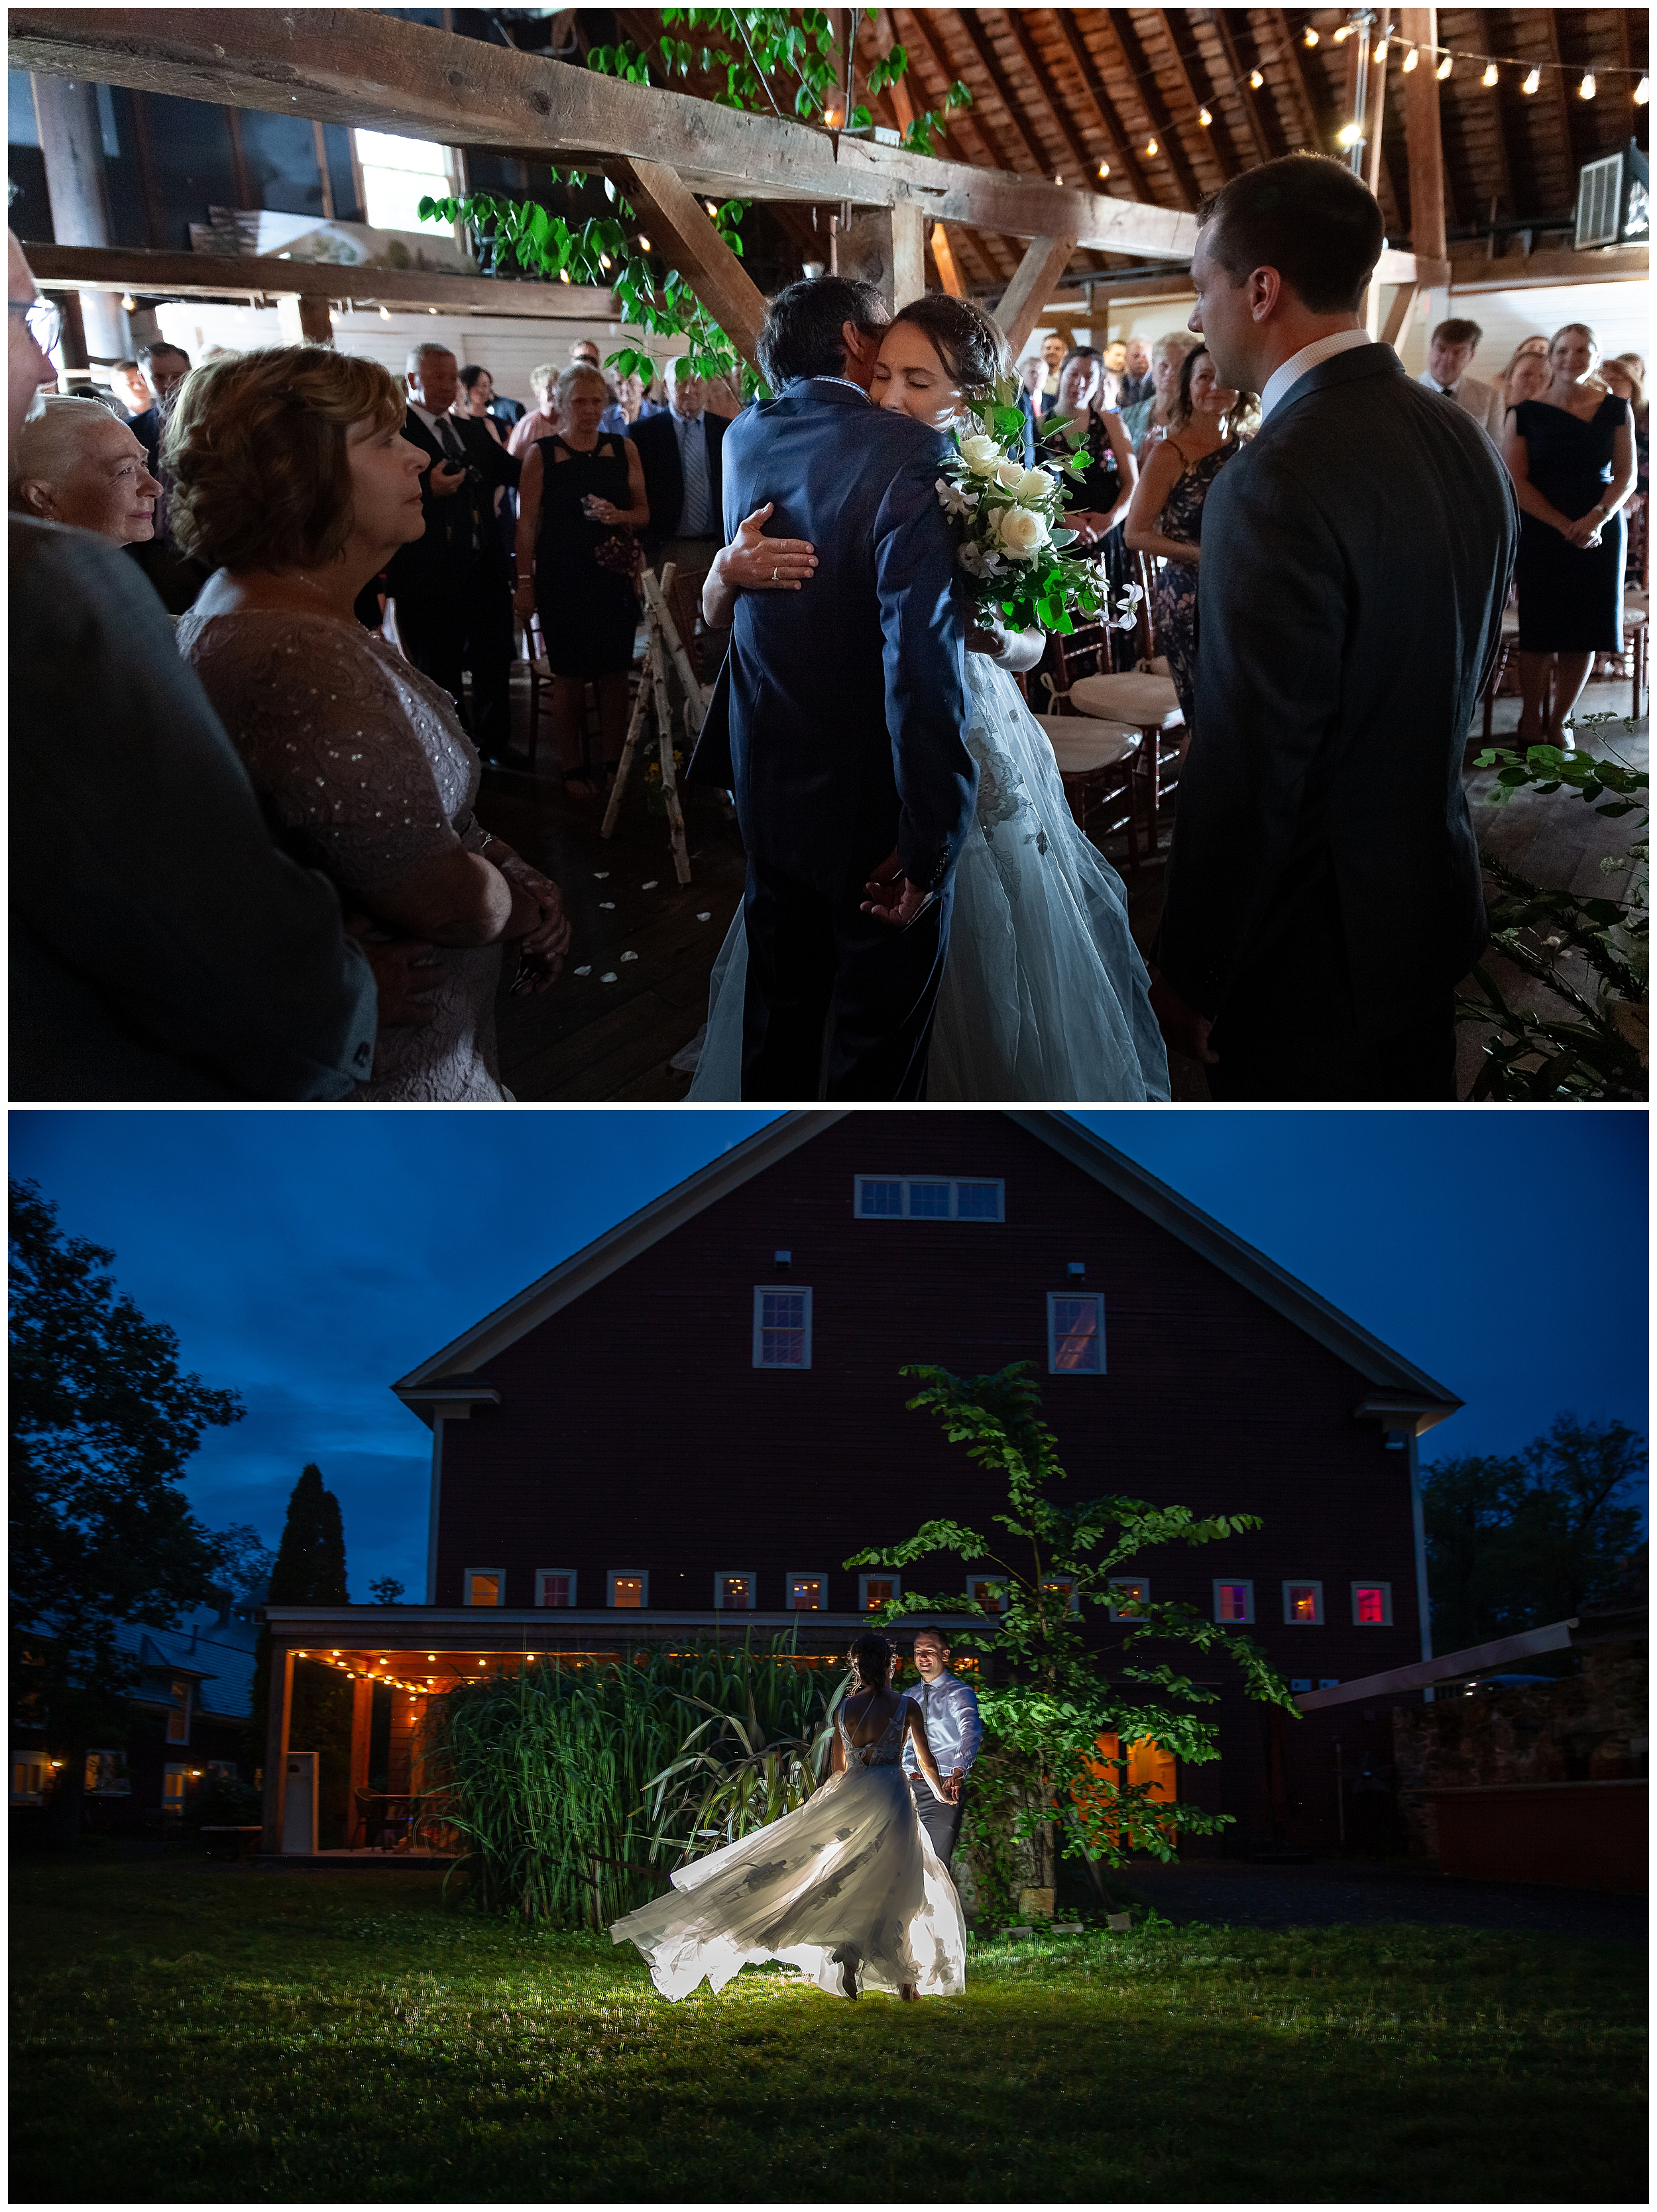 The hug with her father after walking down the aisle and the end of night magic under the misty moon as the newlyweds dance outside the barn.